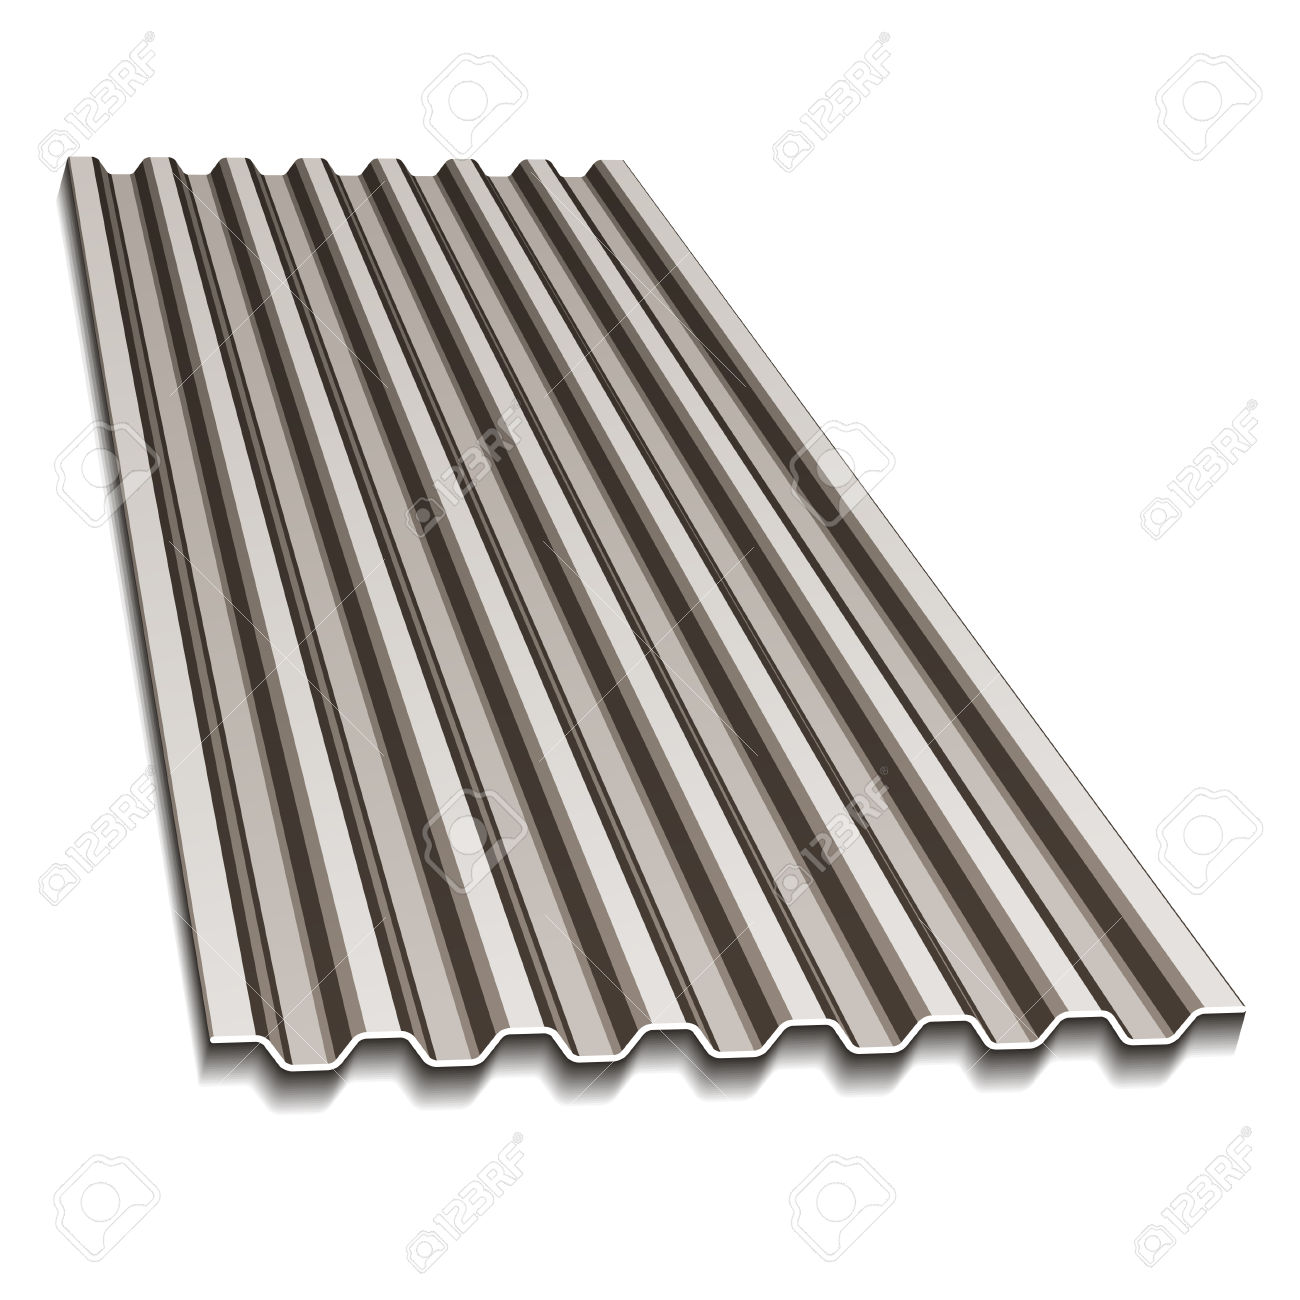 Corrugated Roofing Sheet Royalty Free Cliparts, Vectors, And Stock.